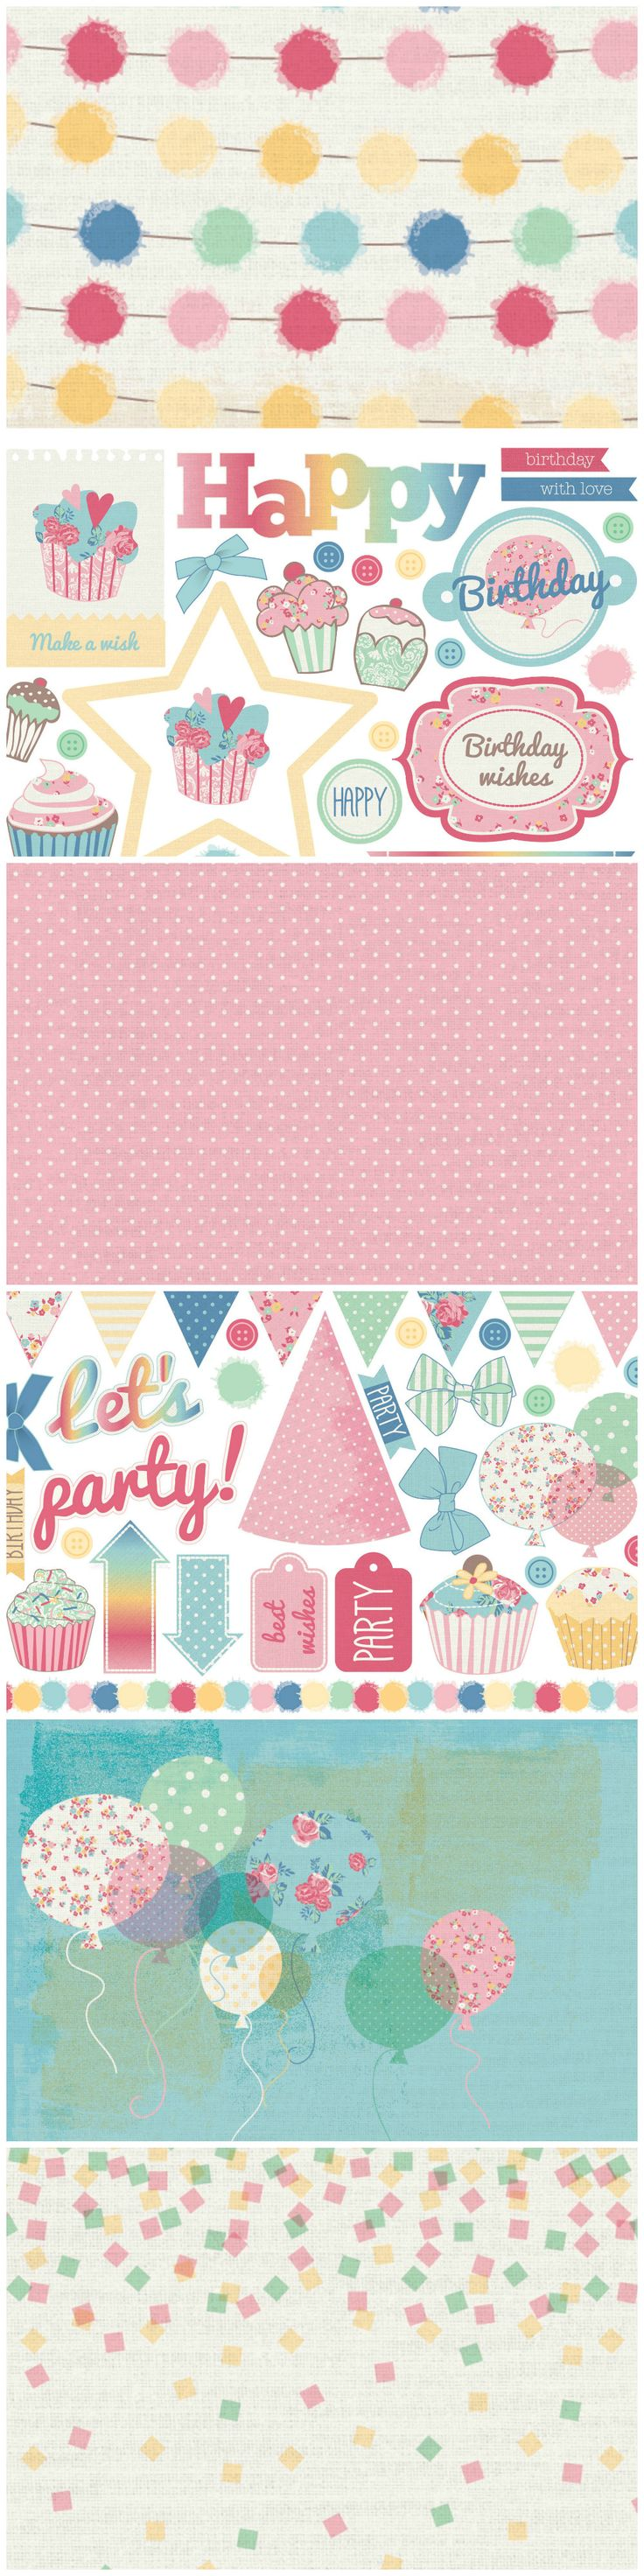 Think of all the bright and brilliant birthday cards you could make with these free printable papers from Papercraft Inspirations issue 151!